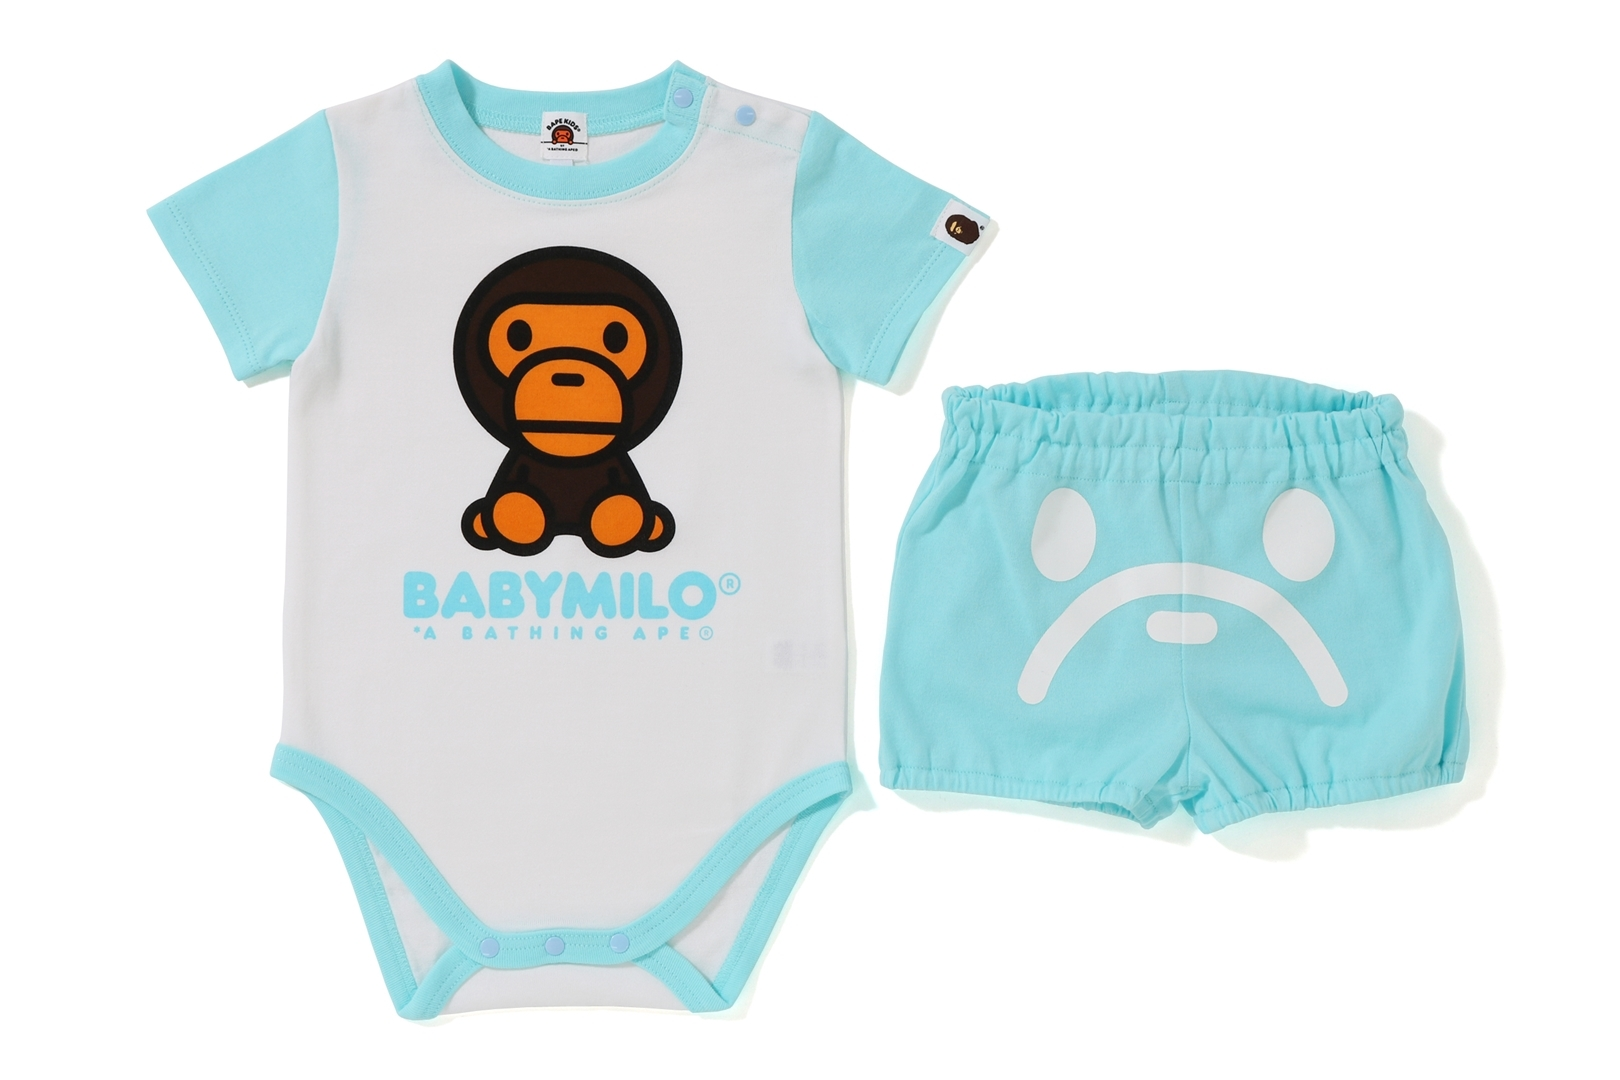 BABY MILO BABY GIFT SET_a0174495_15125992.jpg